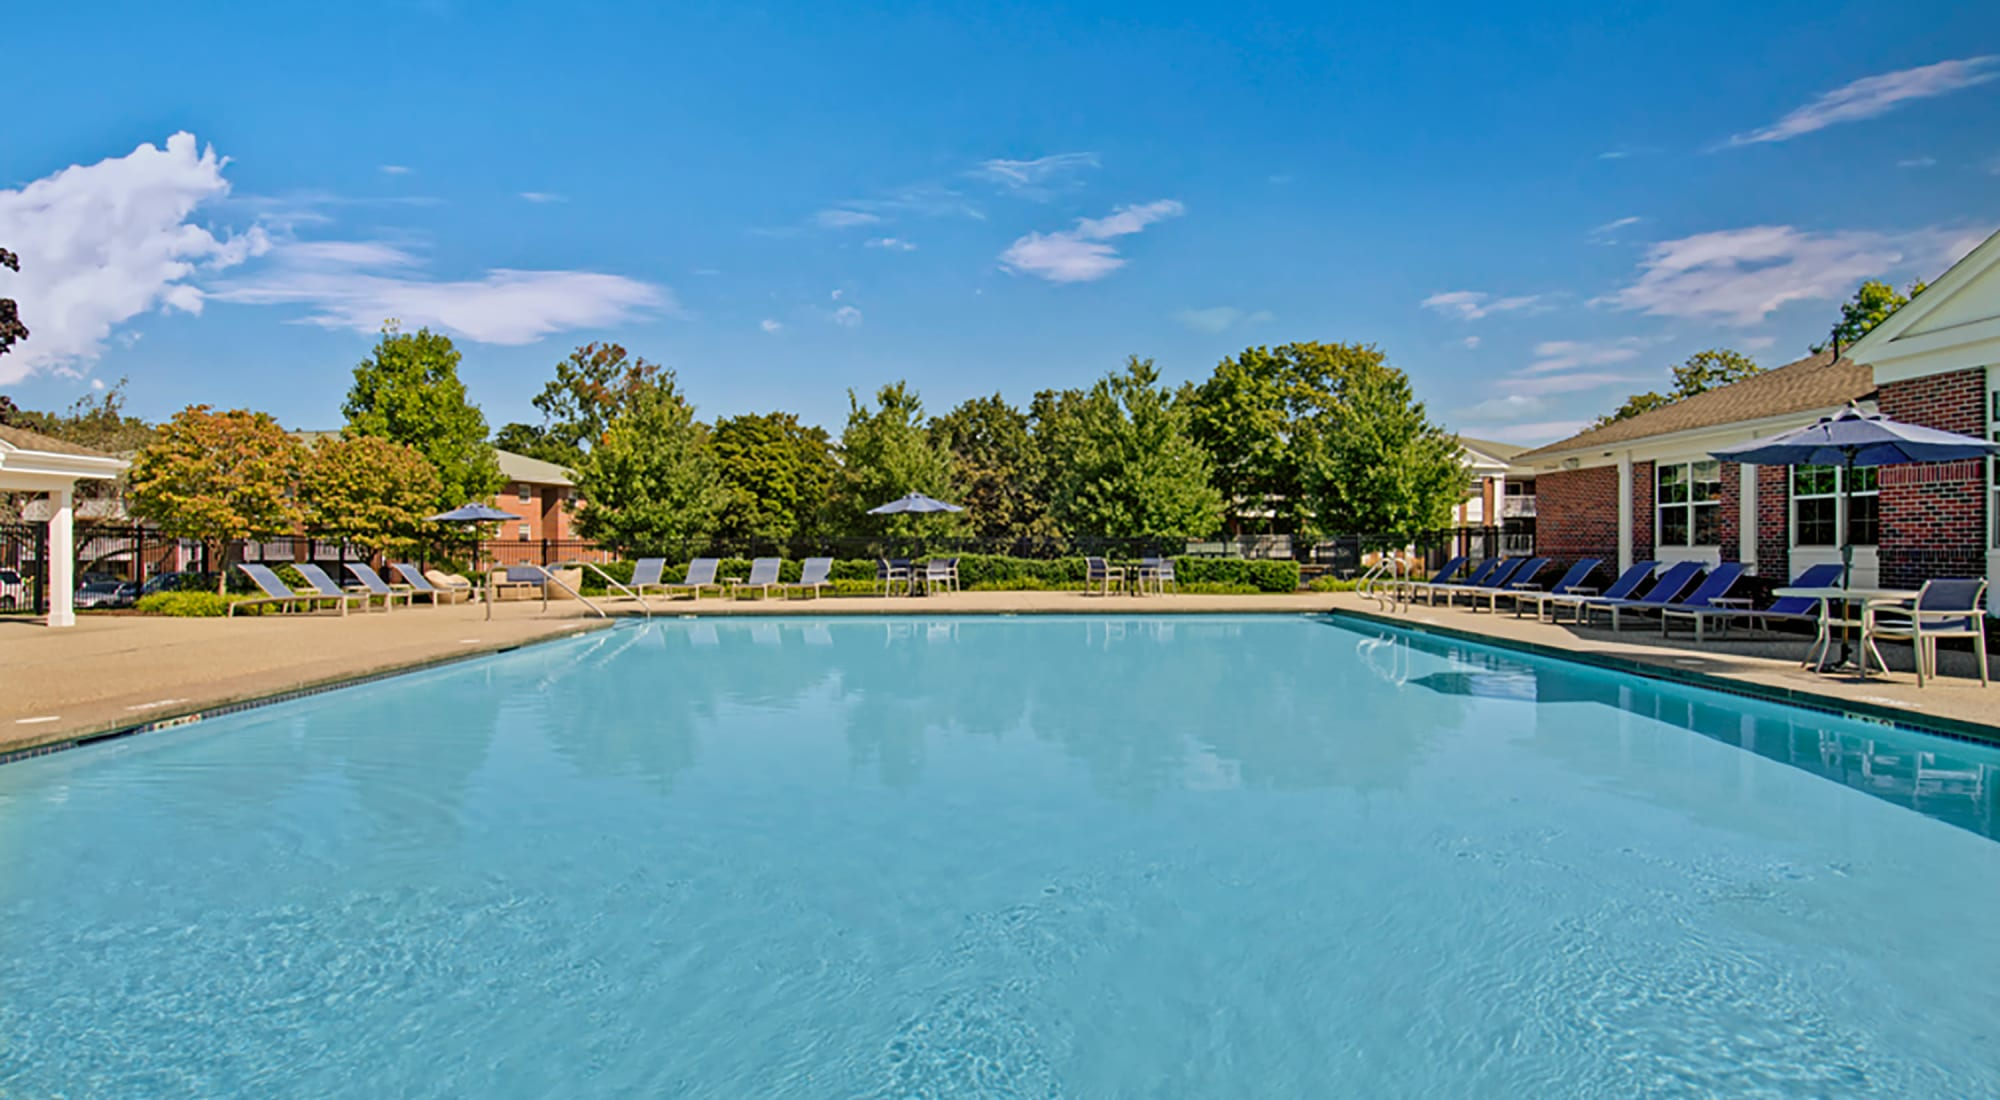 Amenities at Gardencrest in Waltham, Massachusetts